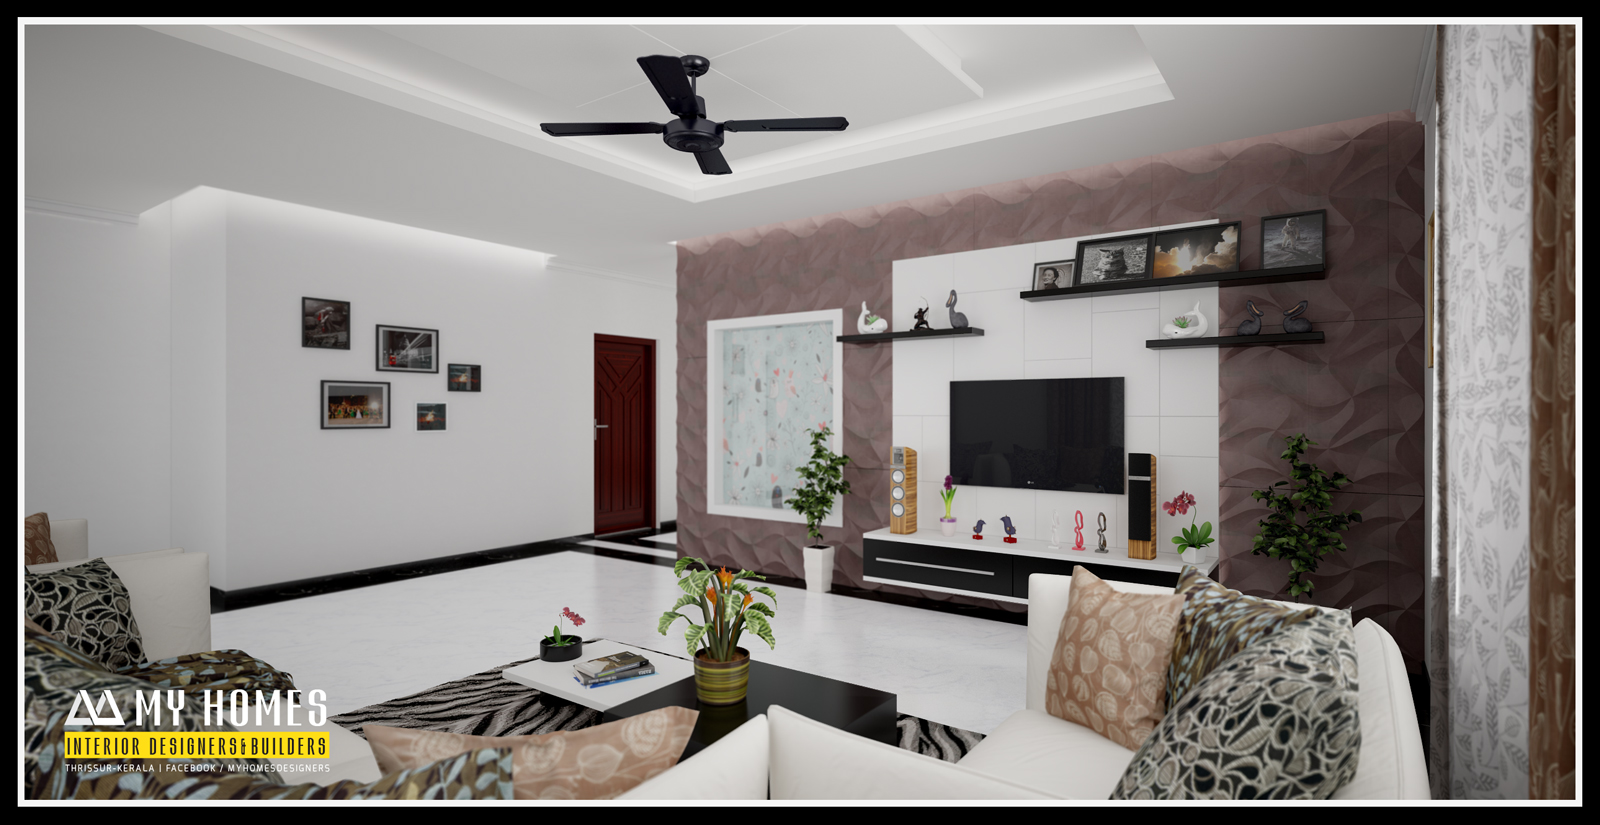 Kerala living room interior designs work in lowest price in india